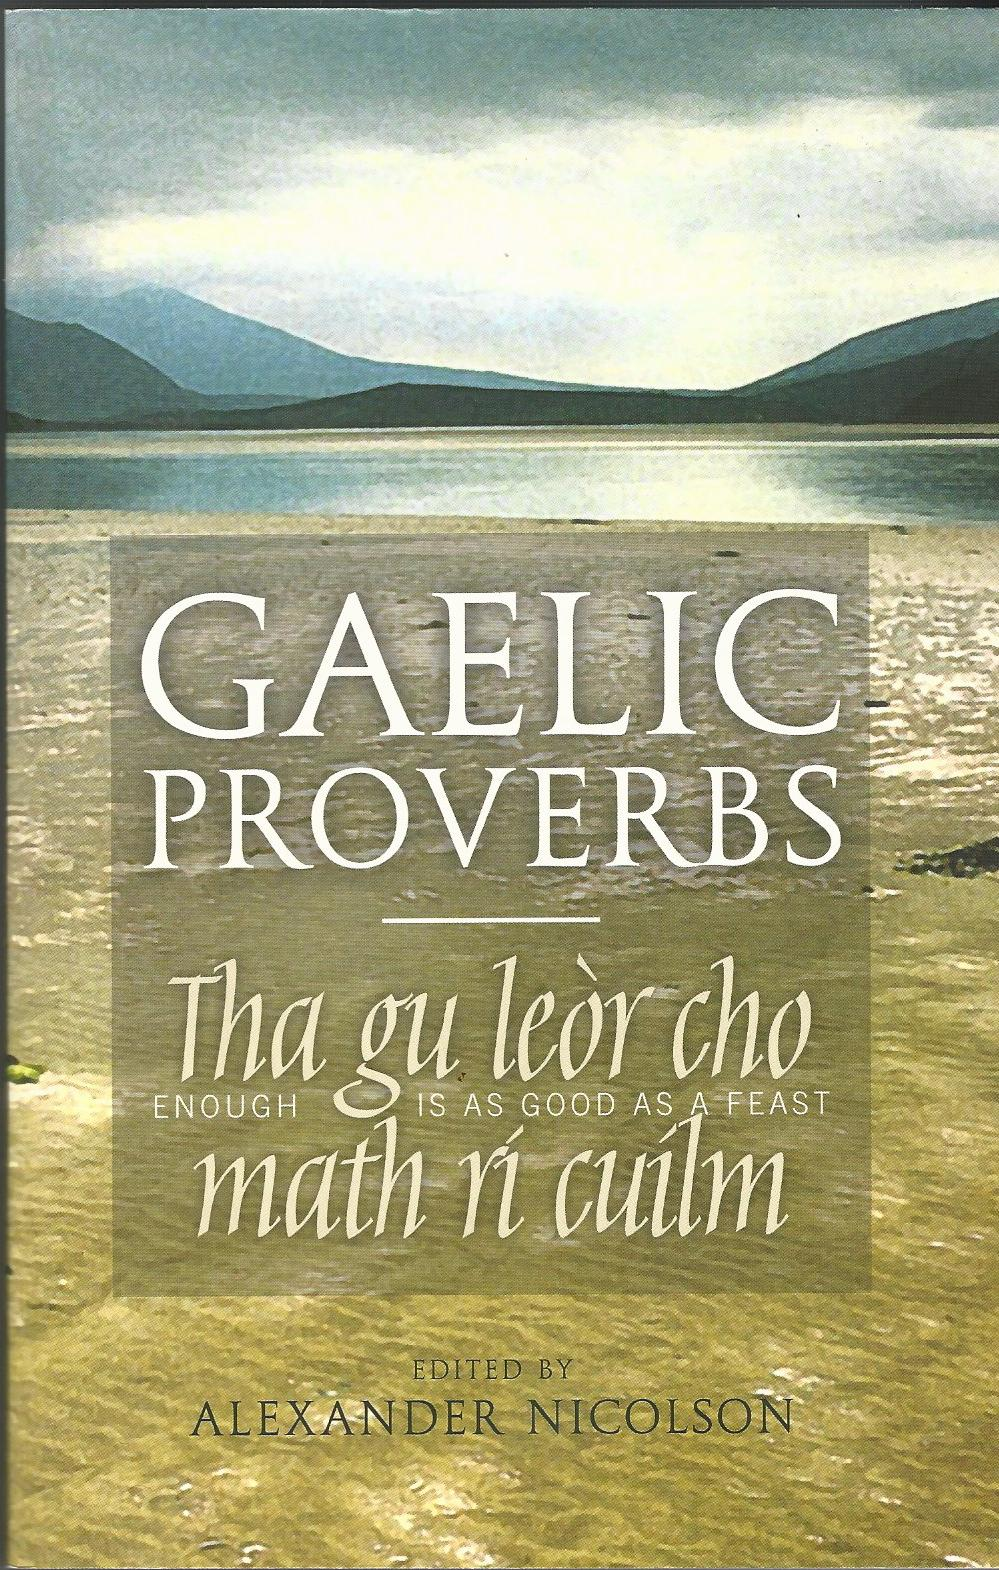 Image for Gaelic Proverbs: Tha gu leor cho math ri cuilm (Enough Is As Good As a Feast)